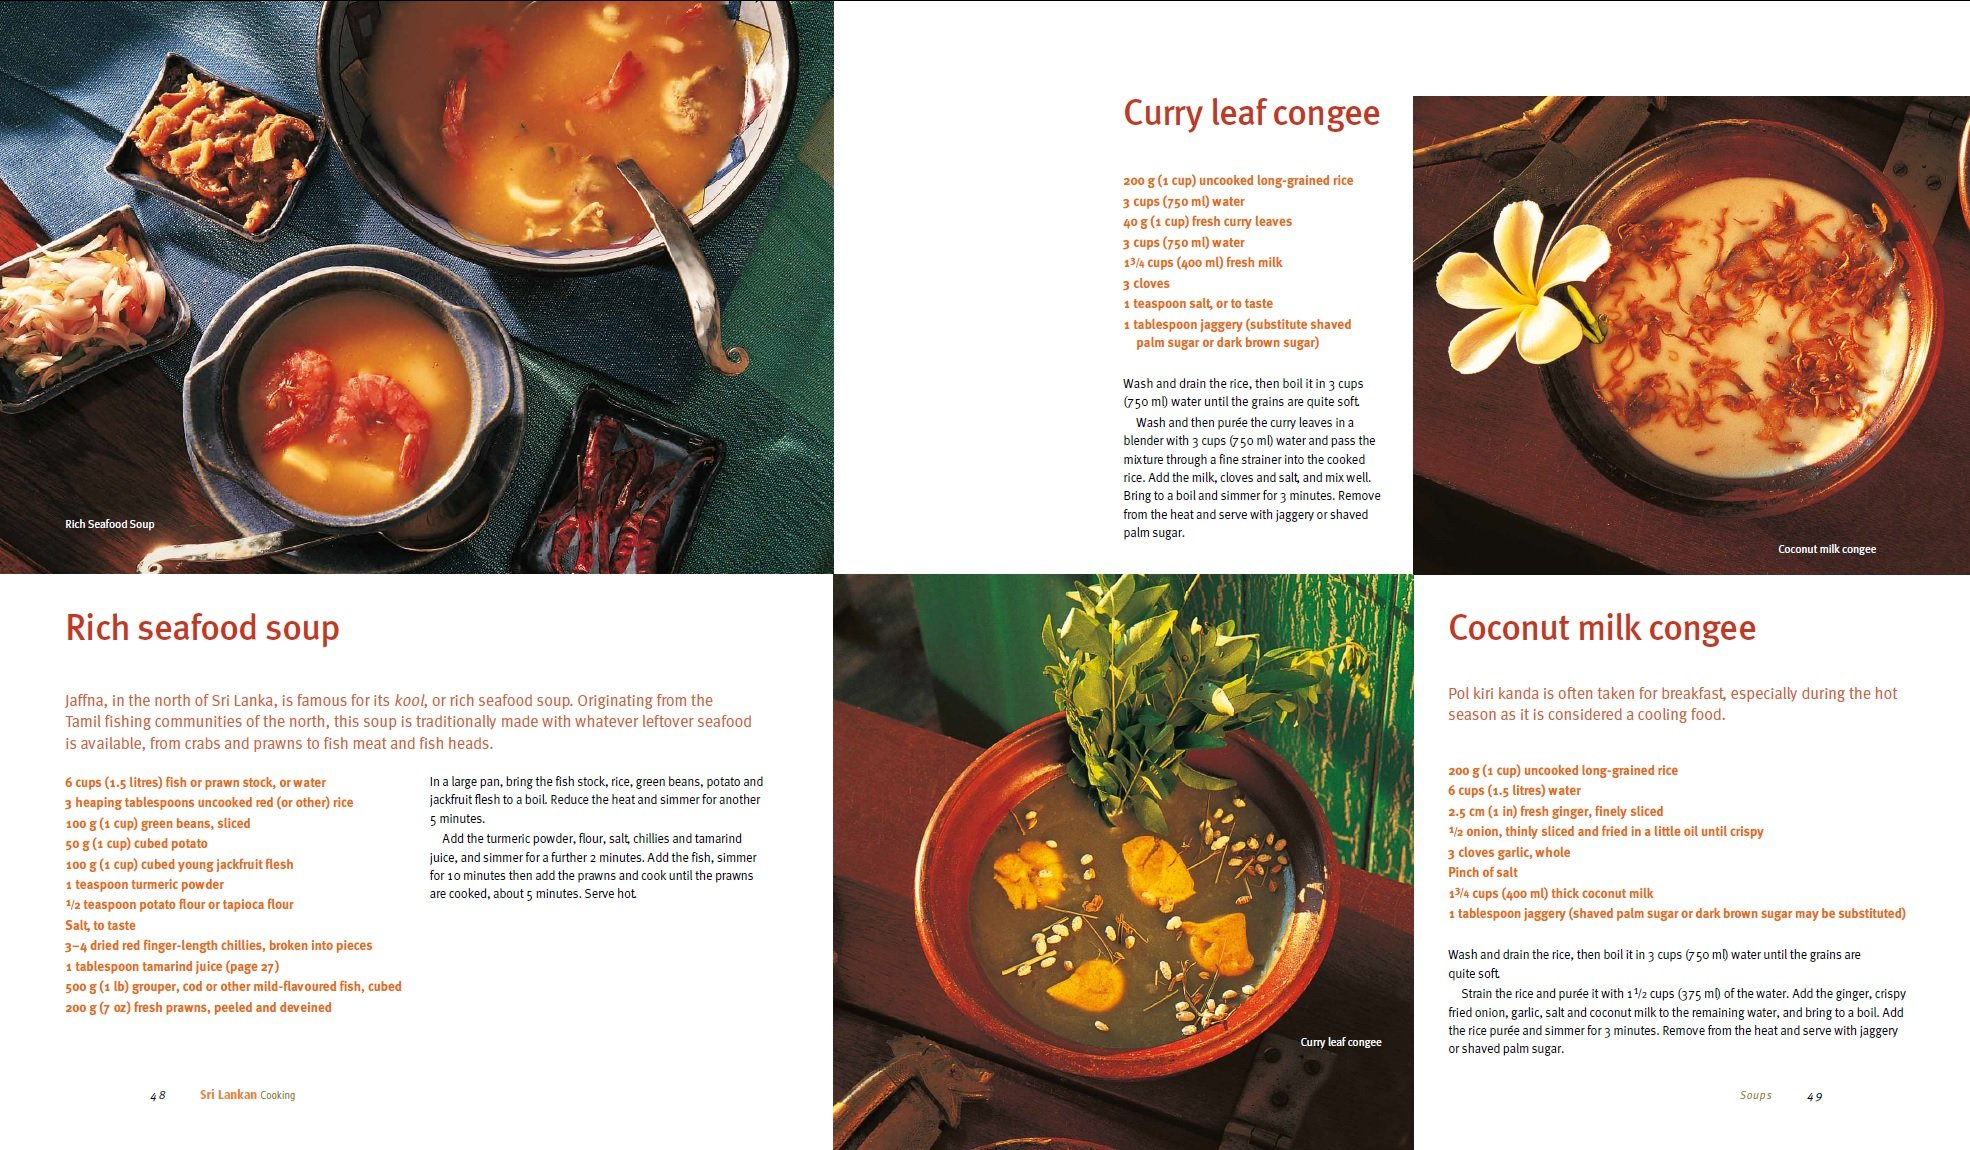 Sri lankan cooking 64 recipes from the chefs and kitchens of sri sri lankan cooking 64 recipes from the chefs and kitchens of sri lanka douglas bullis wendy hutton luca invernizzi tettoni 9780804844161 amazon forumfinder Image collections